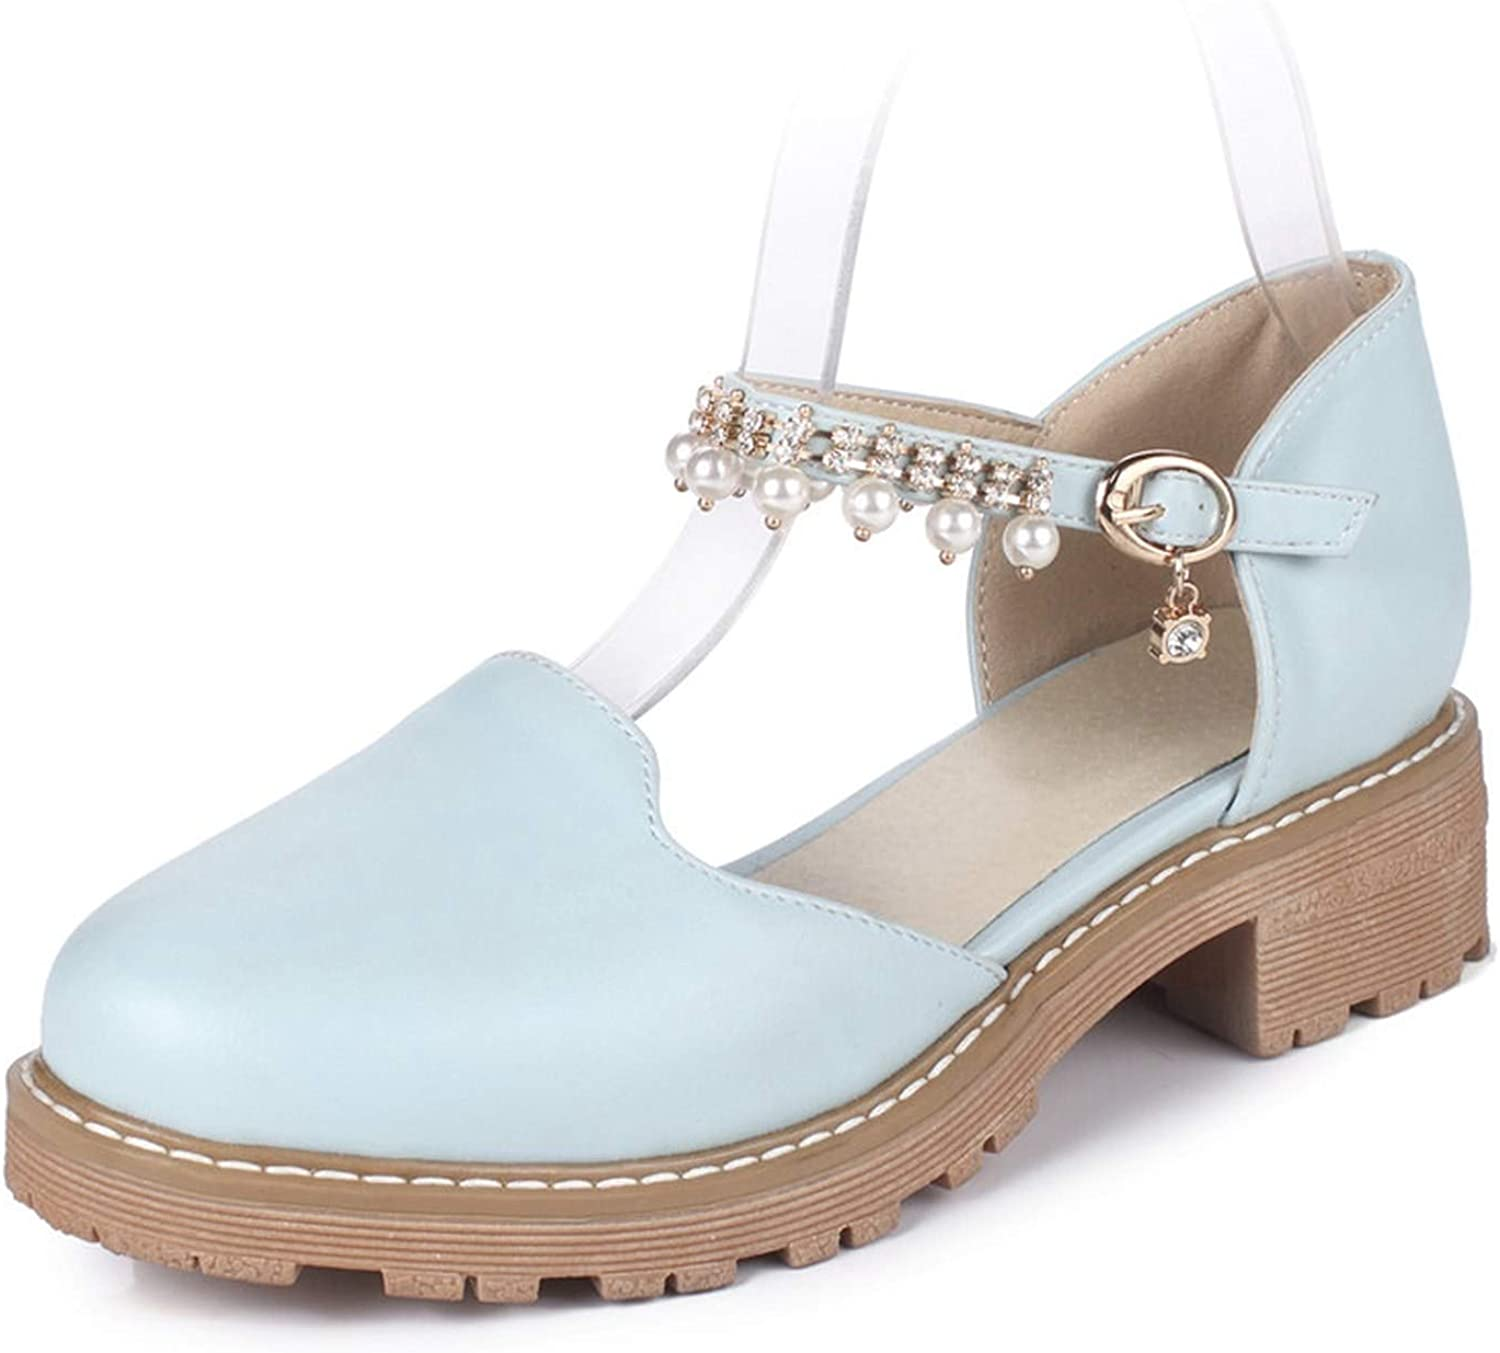 Summer Women Sandals Round Toe Square Heels Summer shoes Rhinestone Ankle Strap shoes Big Size 43